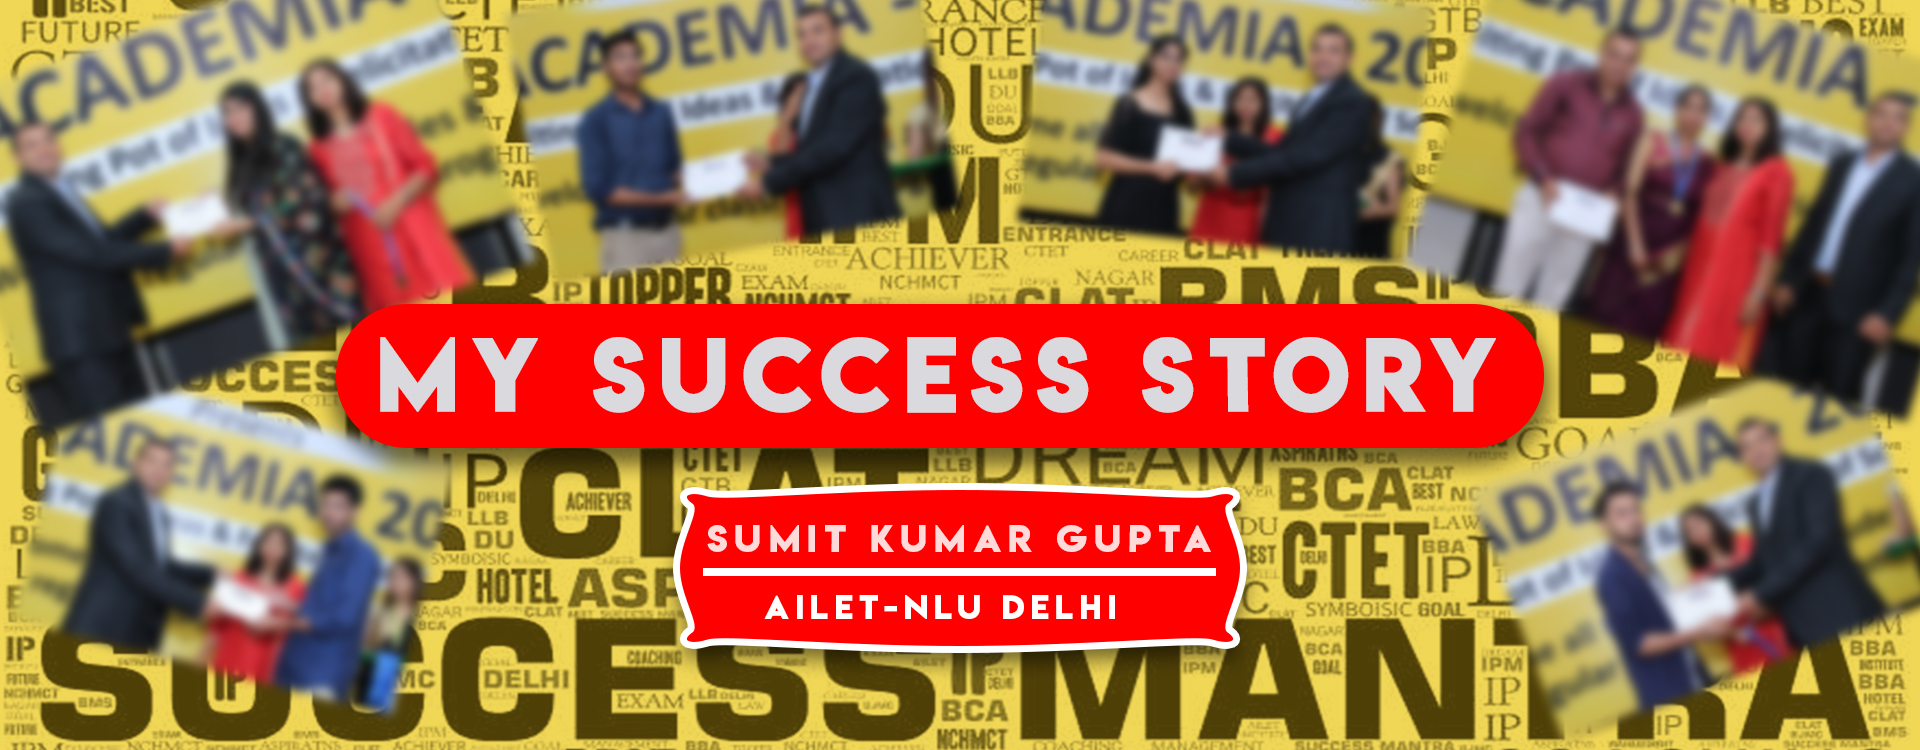 CLAT, AILET, DU LLB, Law Entrance Success Stories, Law Entrance Exam Toppers, Full Interview, Success Mantra Coaching Toppers and Rankers